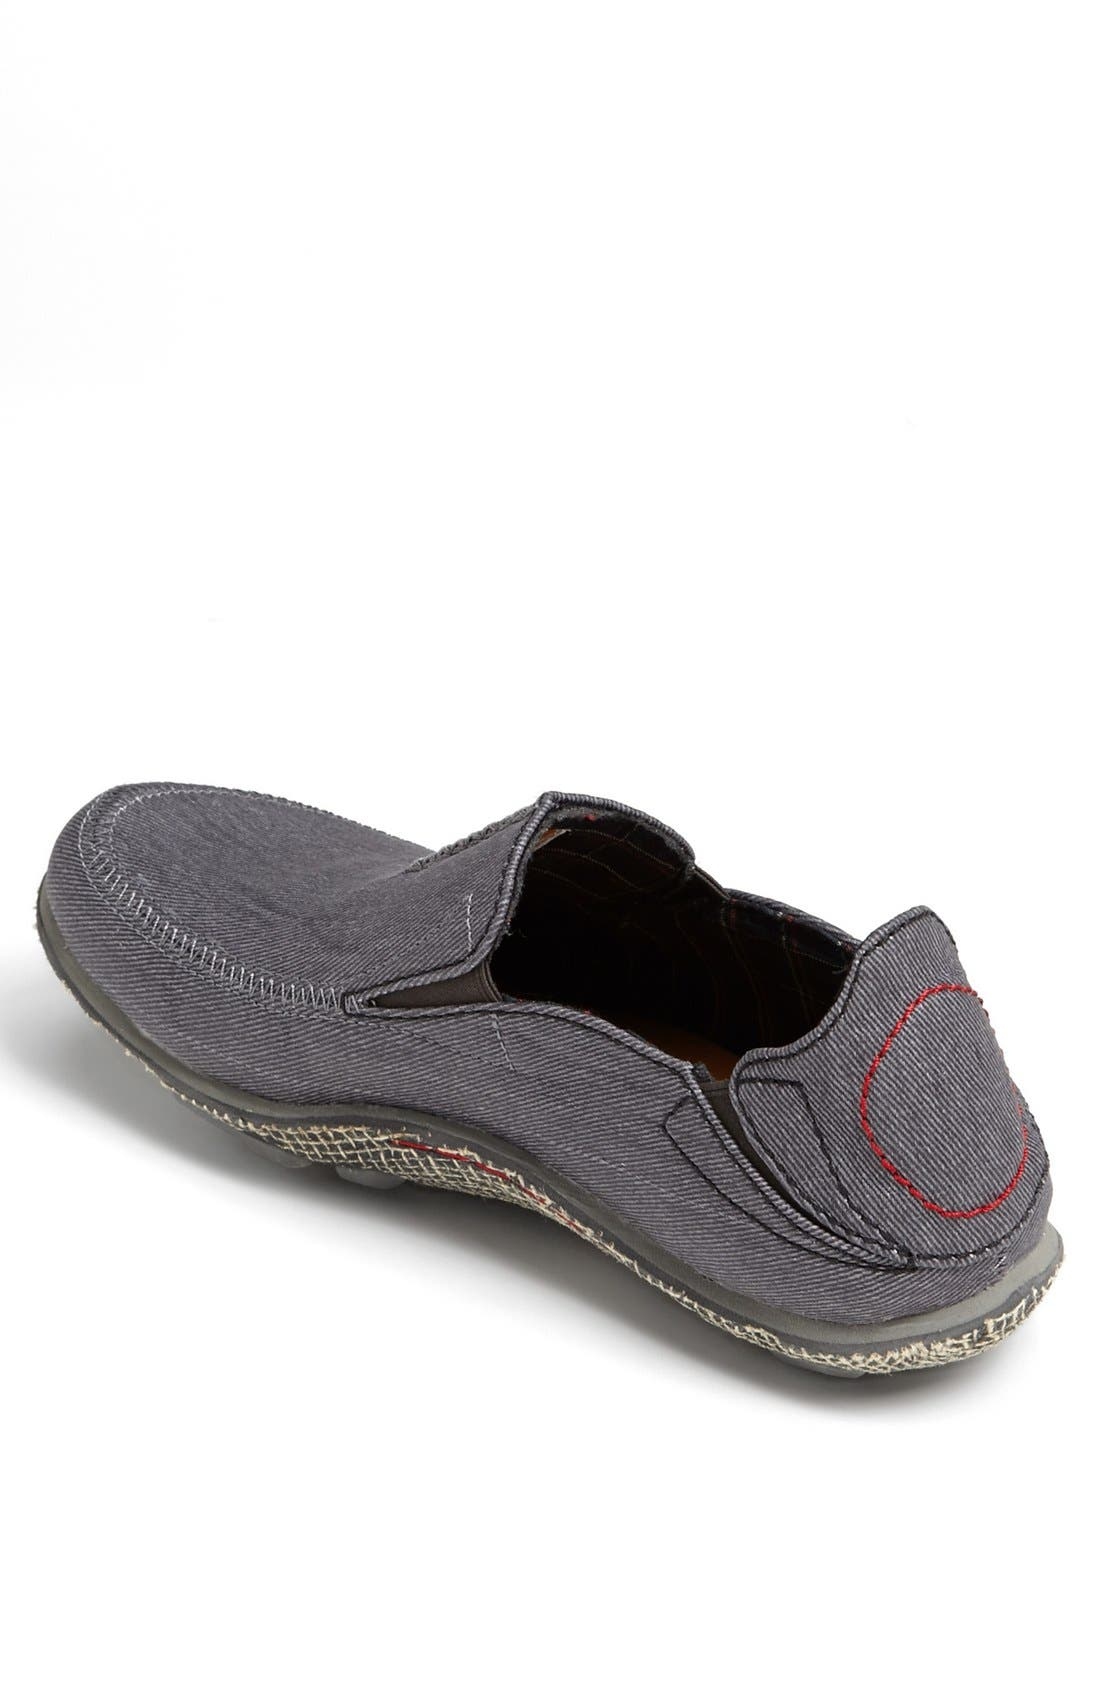 Alternate Image 2  - Cushe 'Surf' Slip-On